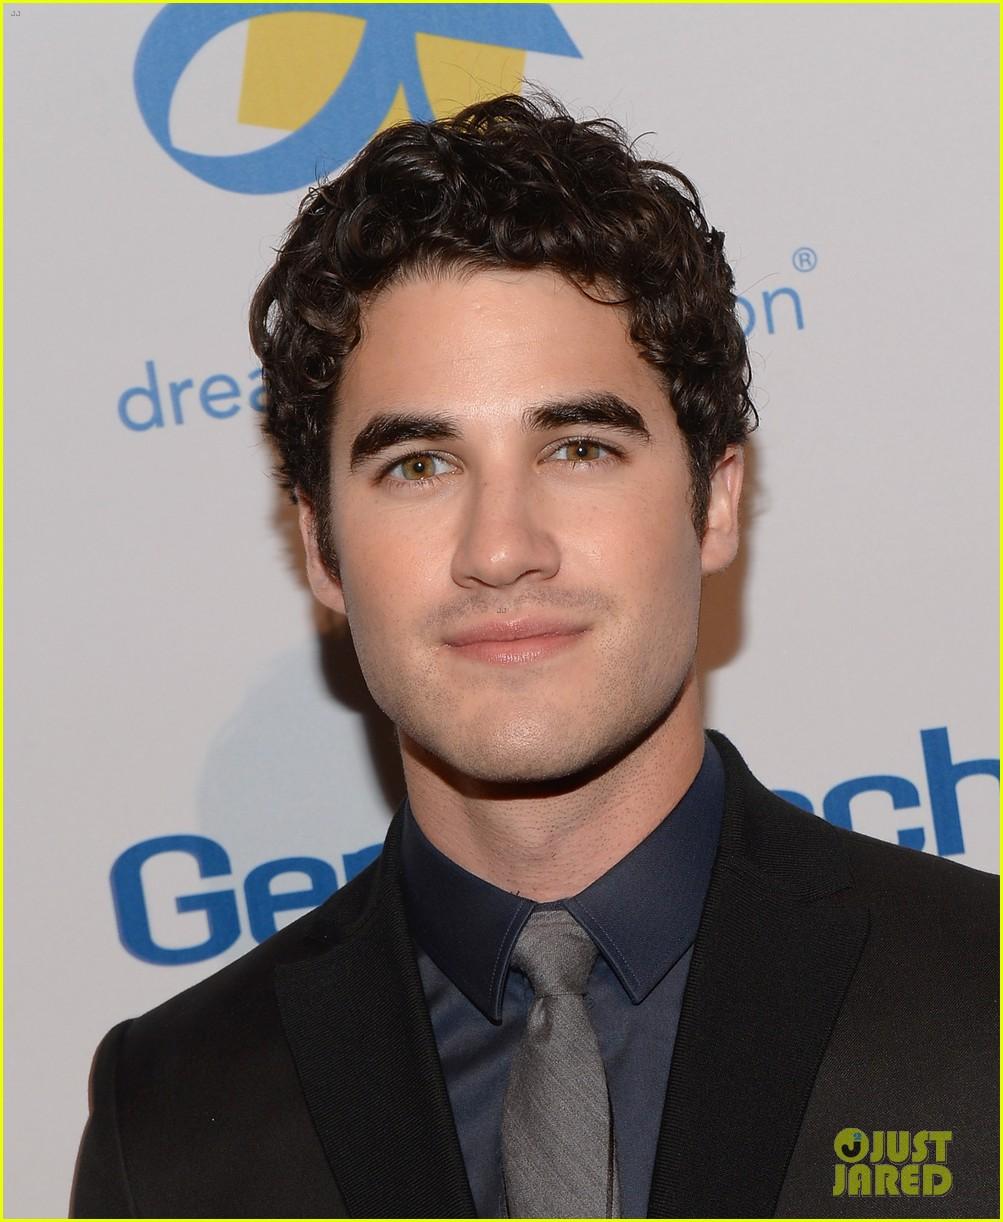 darren criss jane lynch celebration of dreams gala 2013 052981136